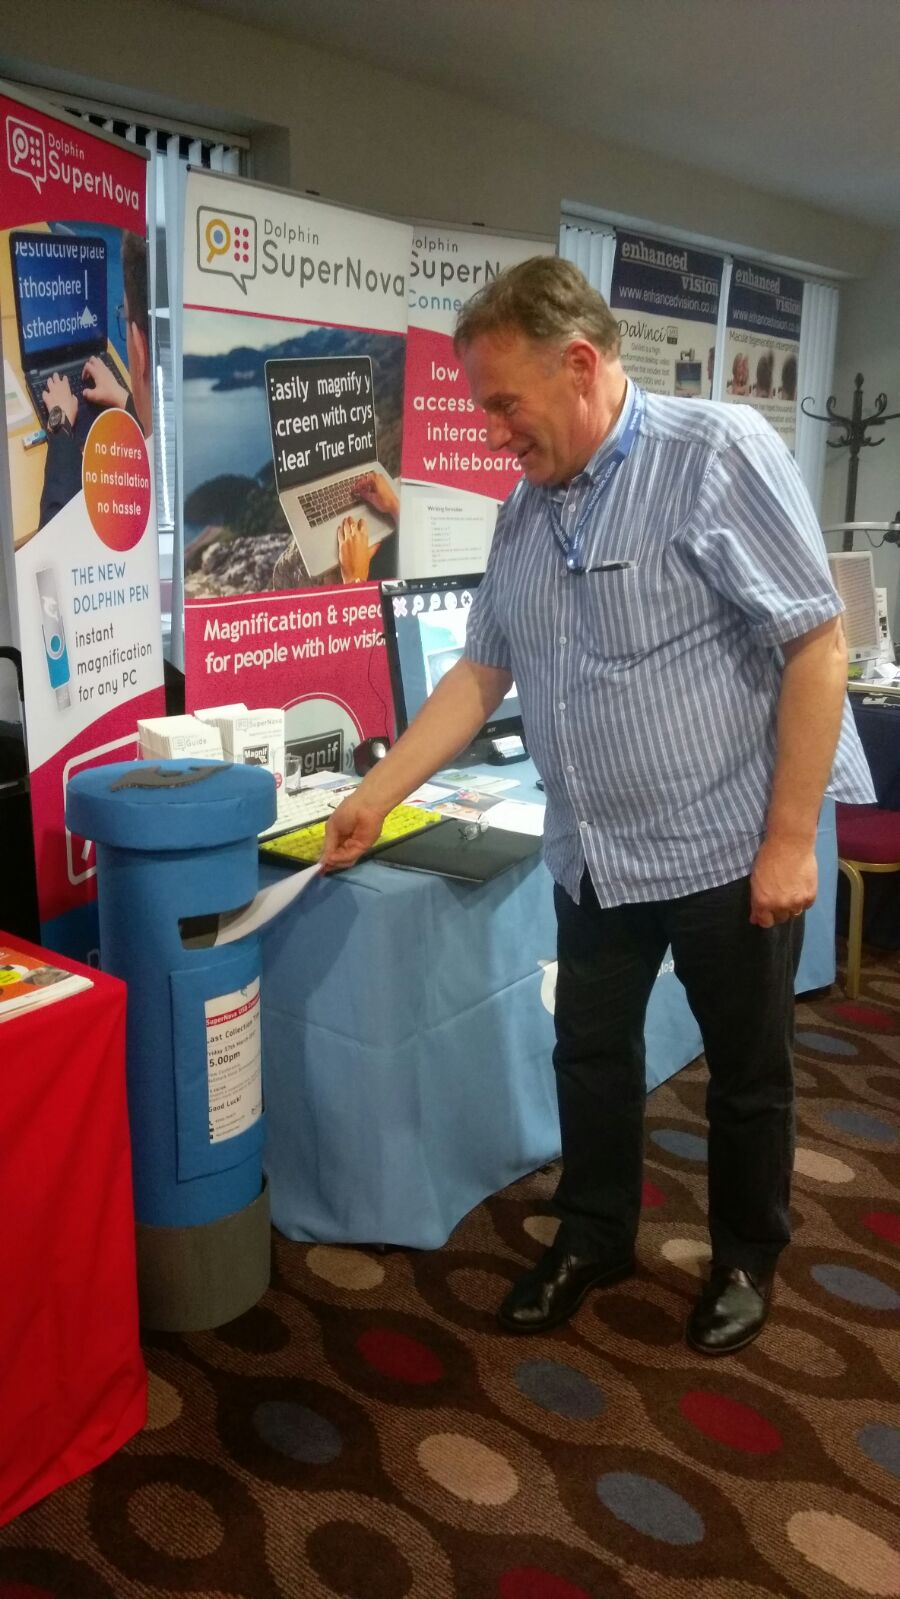 Event attendee posting his prize draw entry into the Dolphin postbox